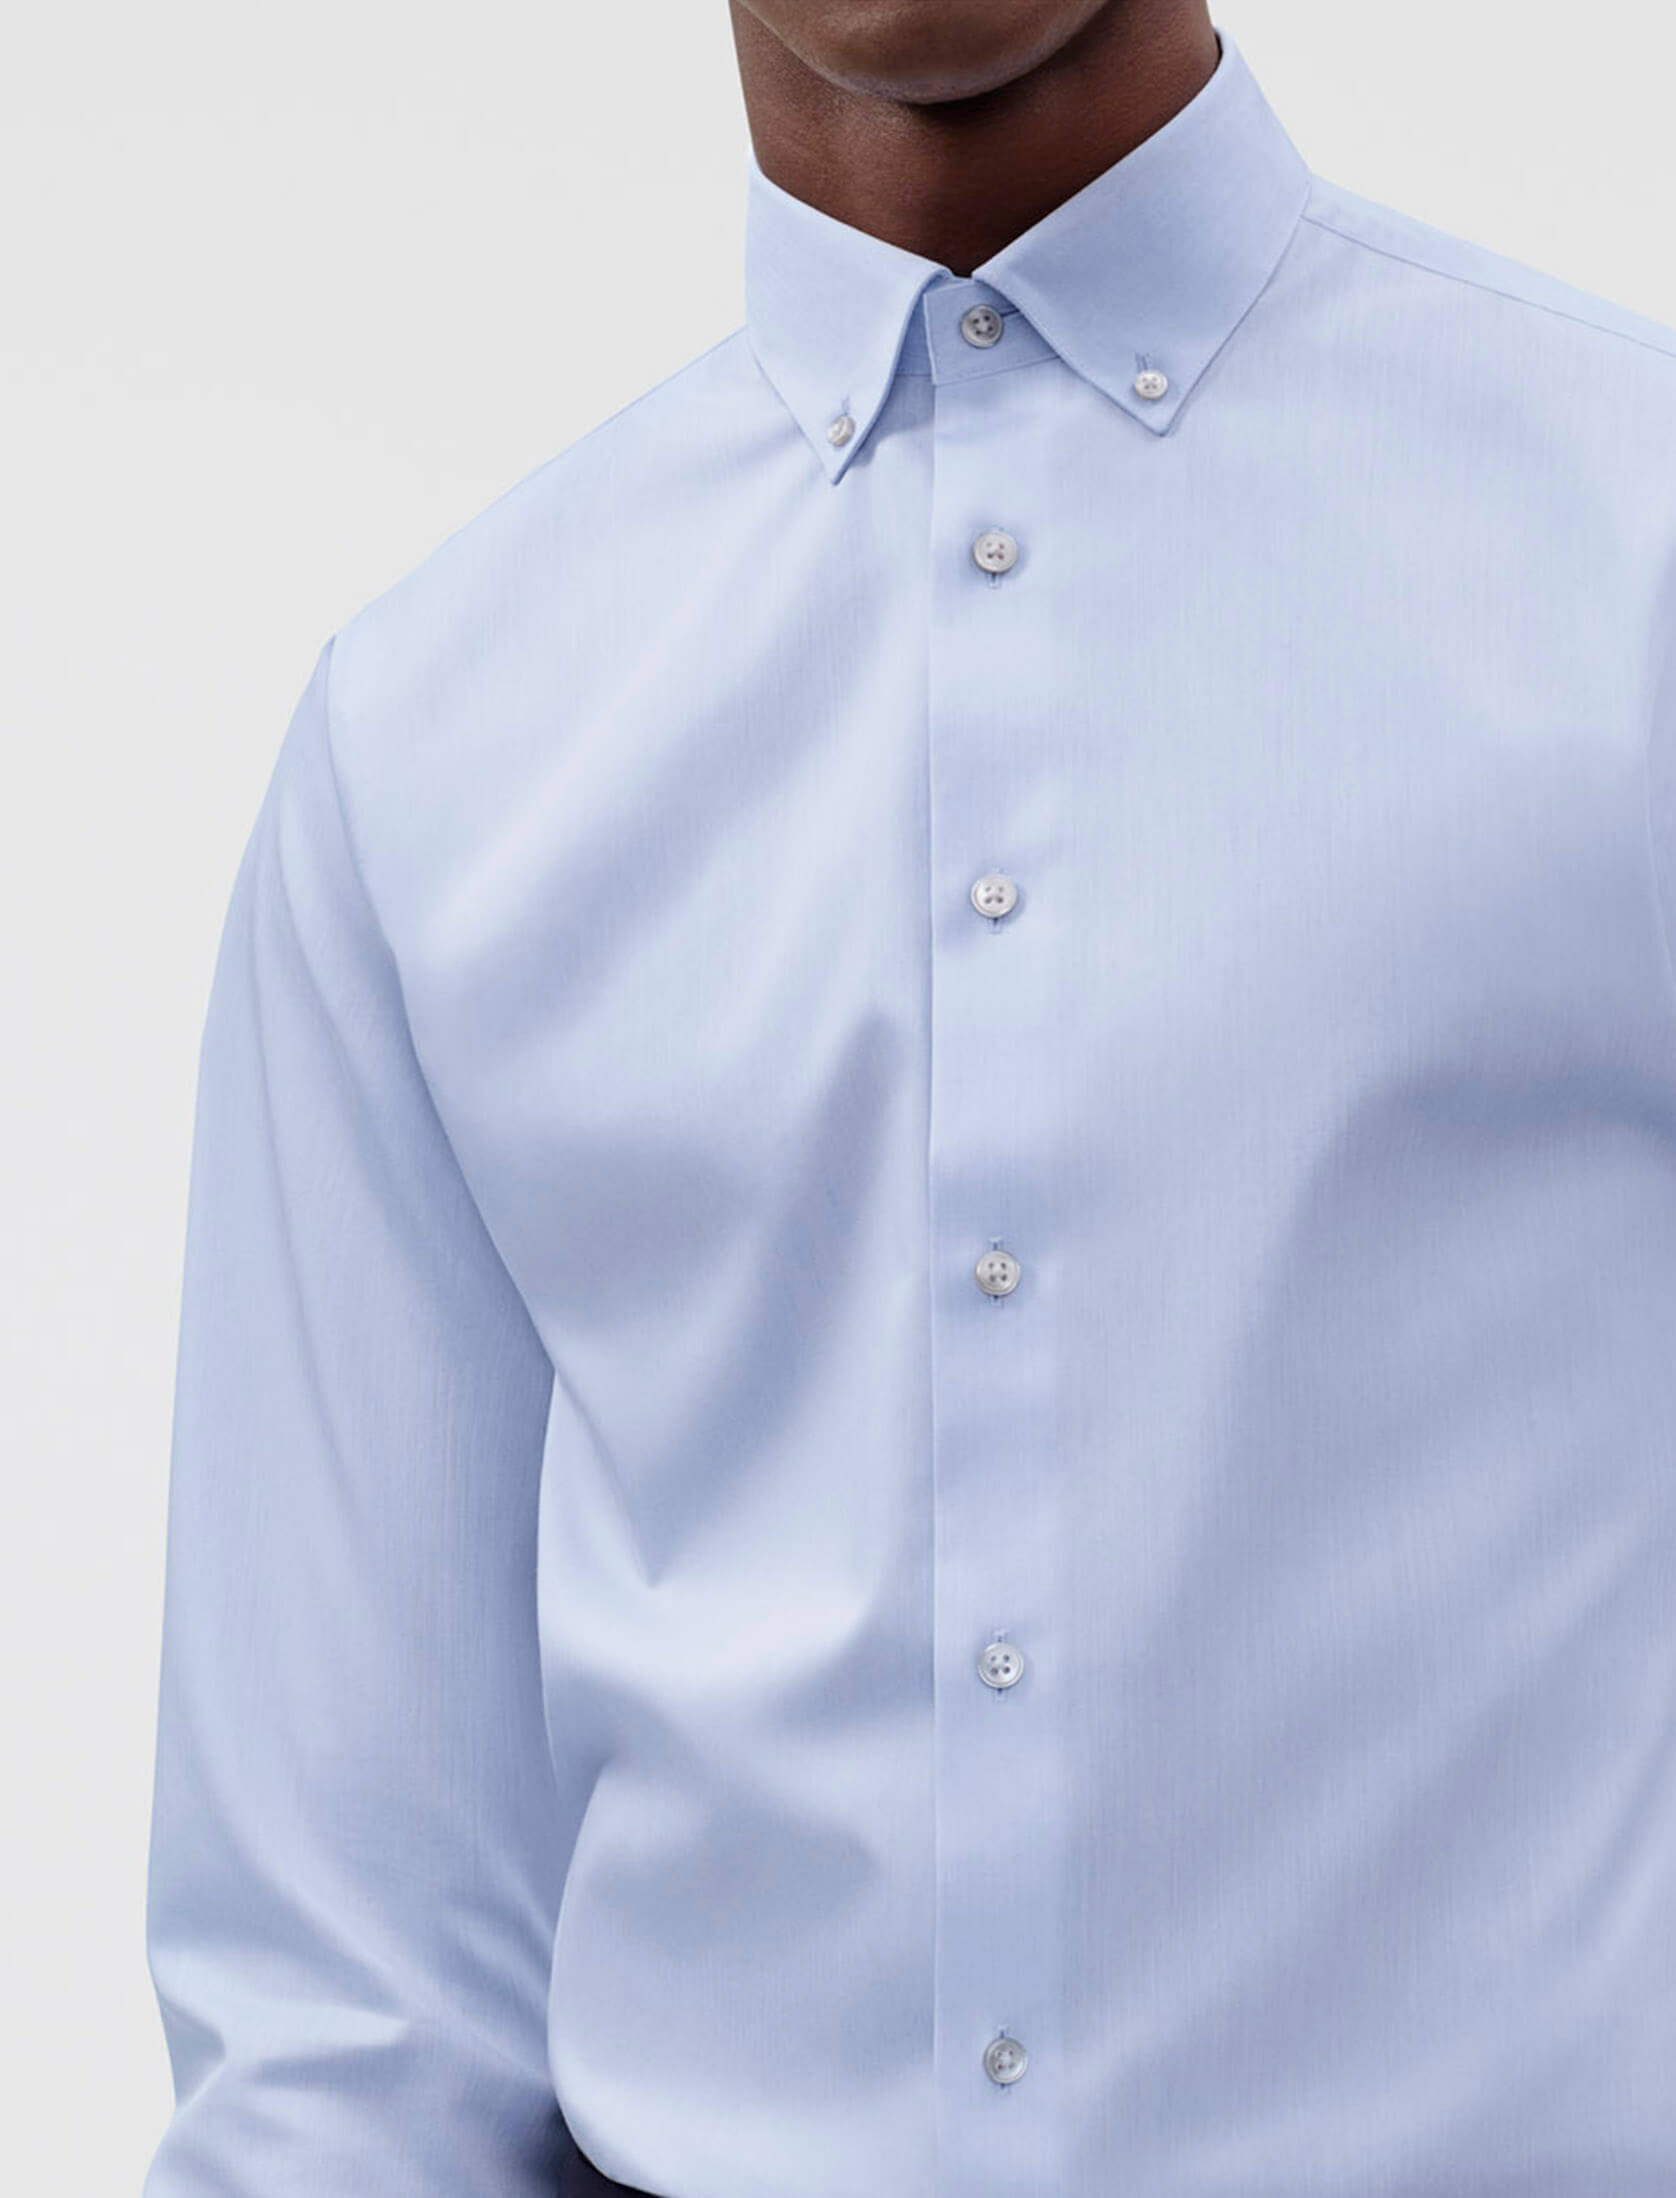 8afe4e72 Relaxed shoulders for an easy fit